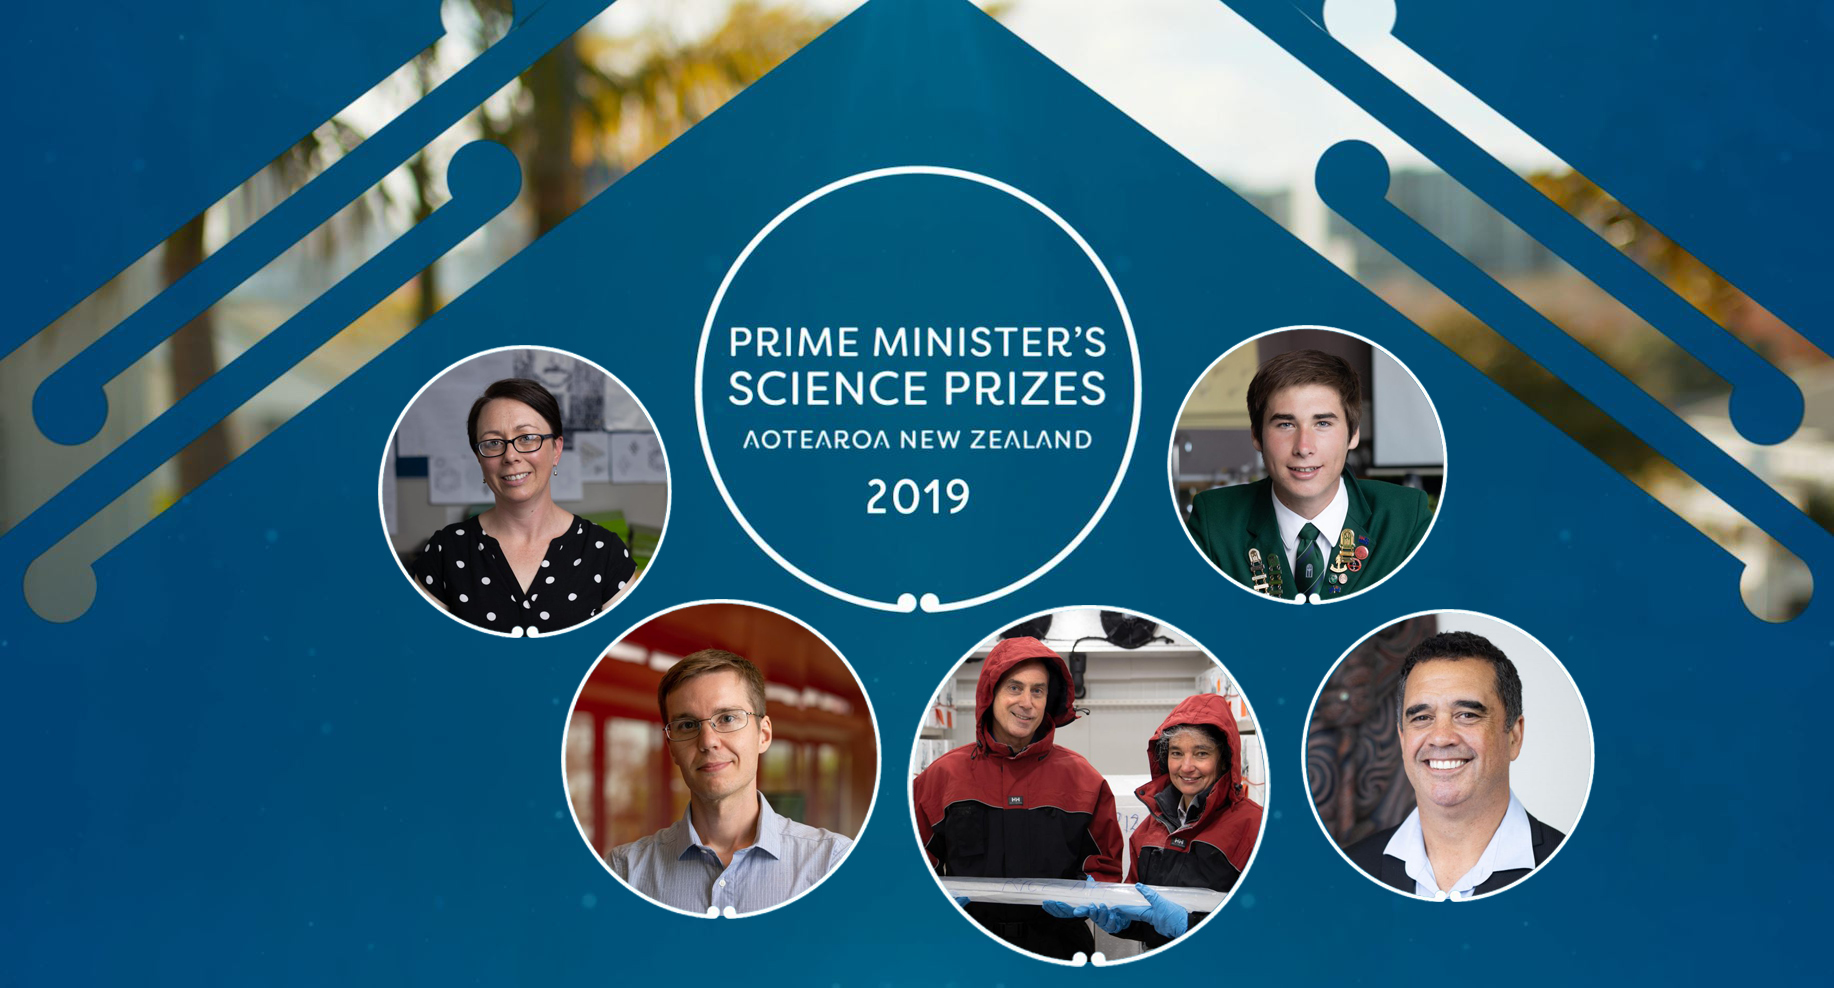 Image: 2019 Prime Minister's Science Prizes announced